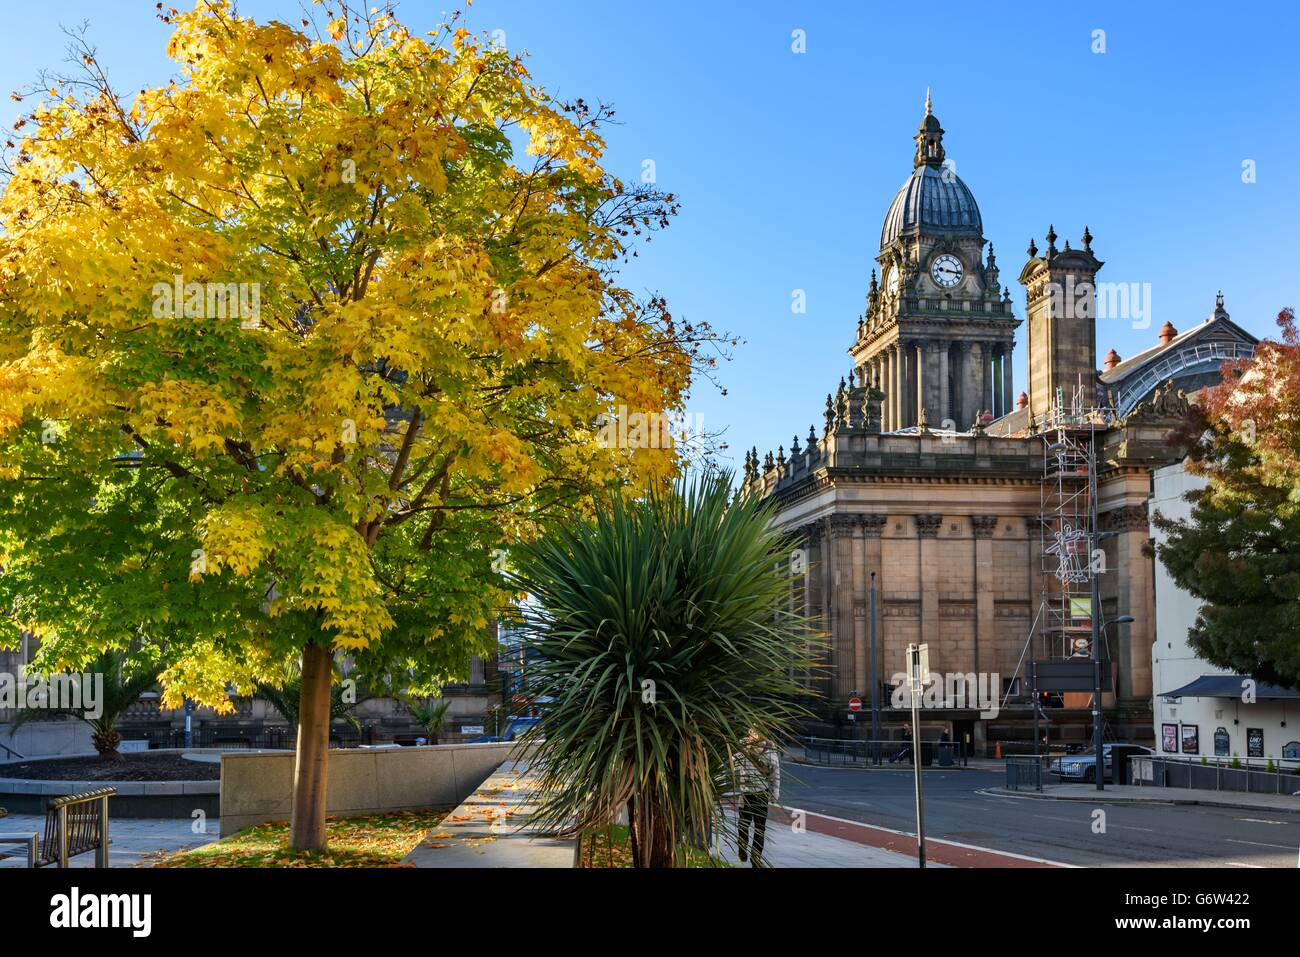 View of Leeds town hall from the Millennium square in Leeds, England. - Stock Image